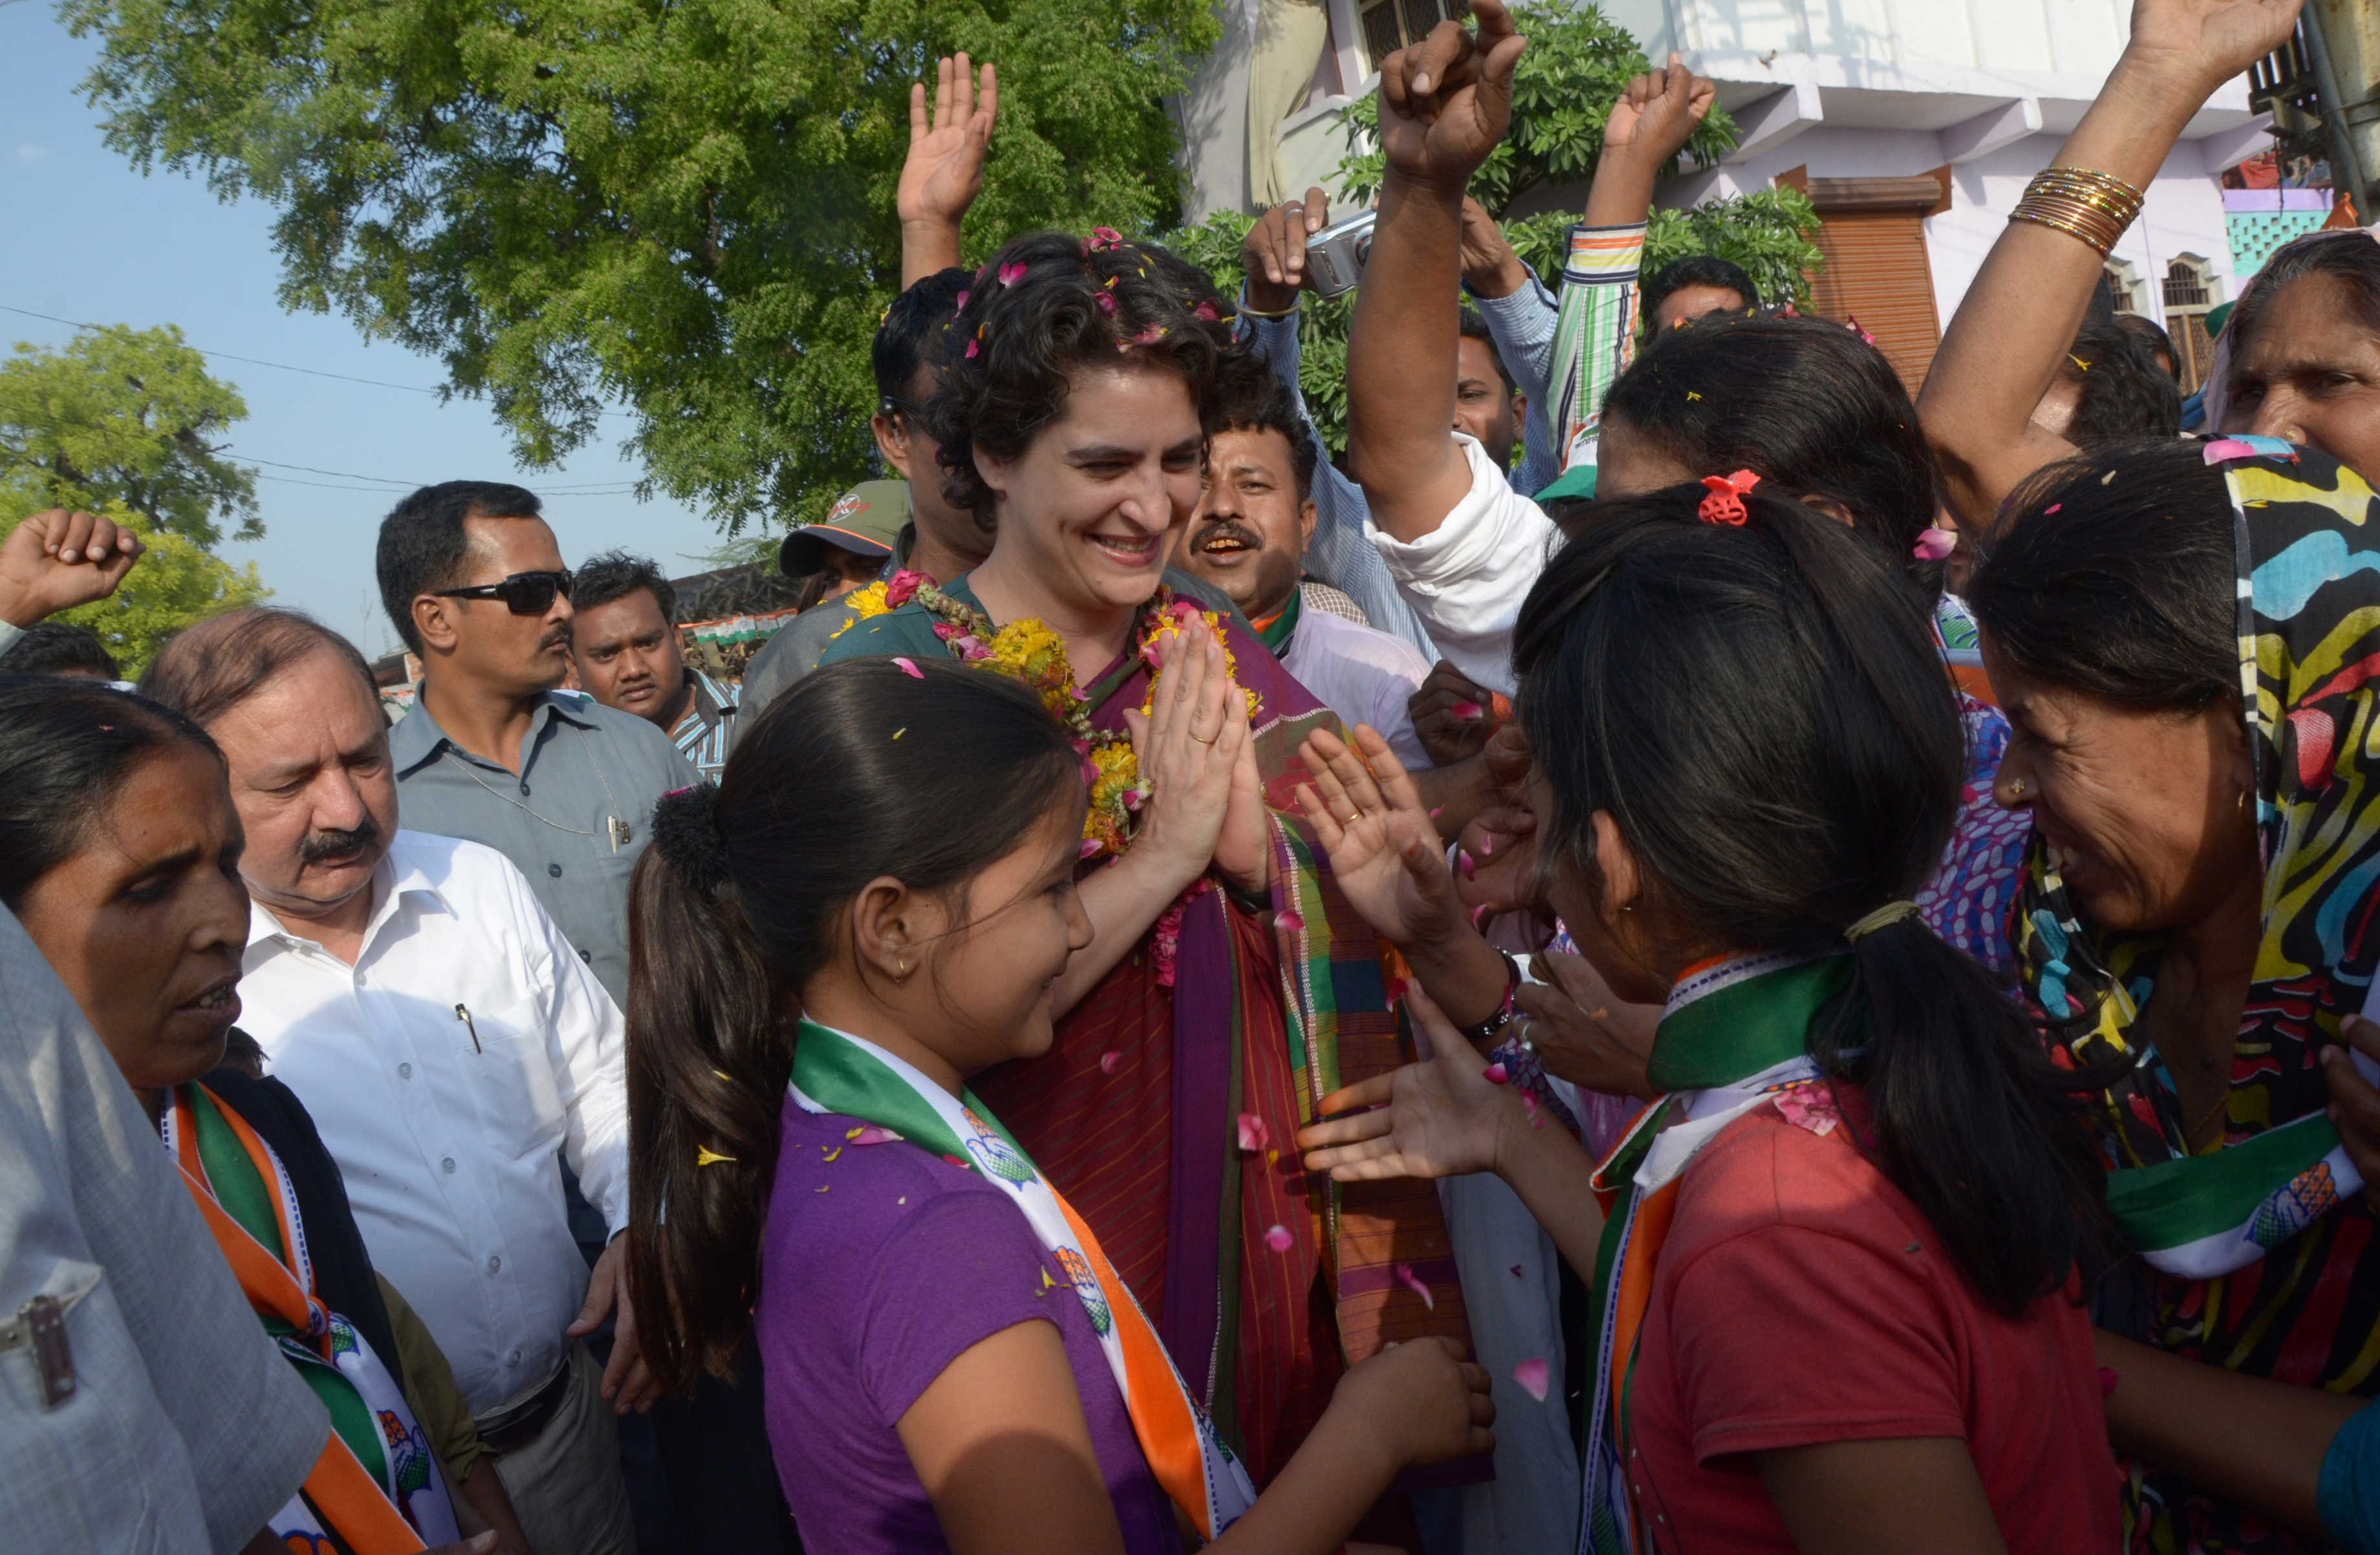 Priyanka Gandhi Vadra during a road-show campaign for her mother, Congress president Sonia Gandhi, in Raebareli, India, on April 23, 2014